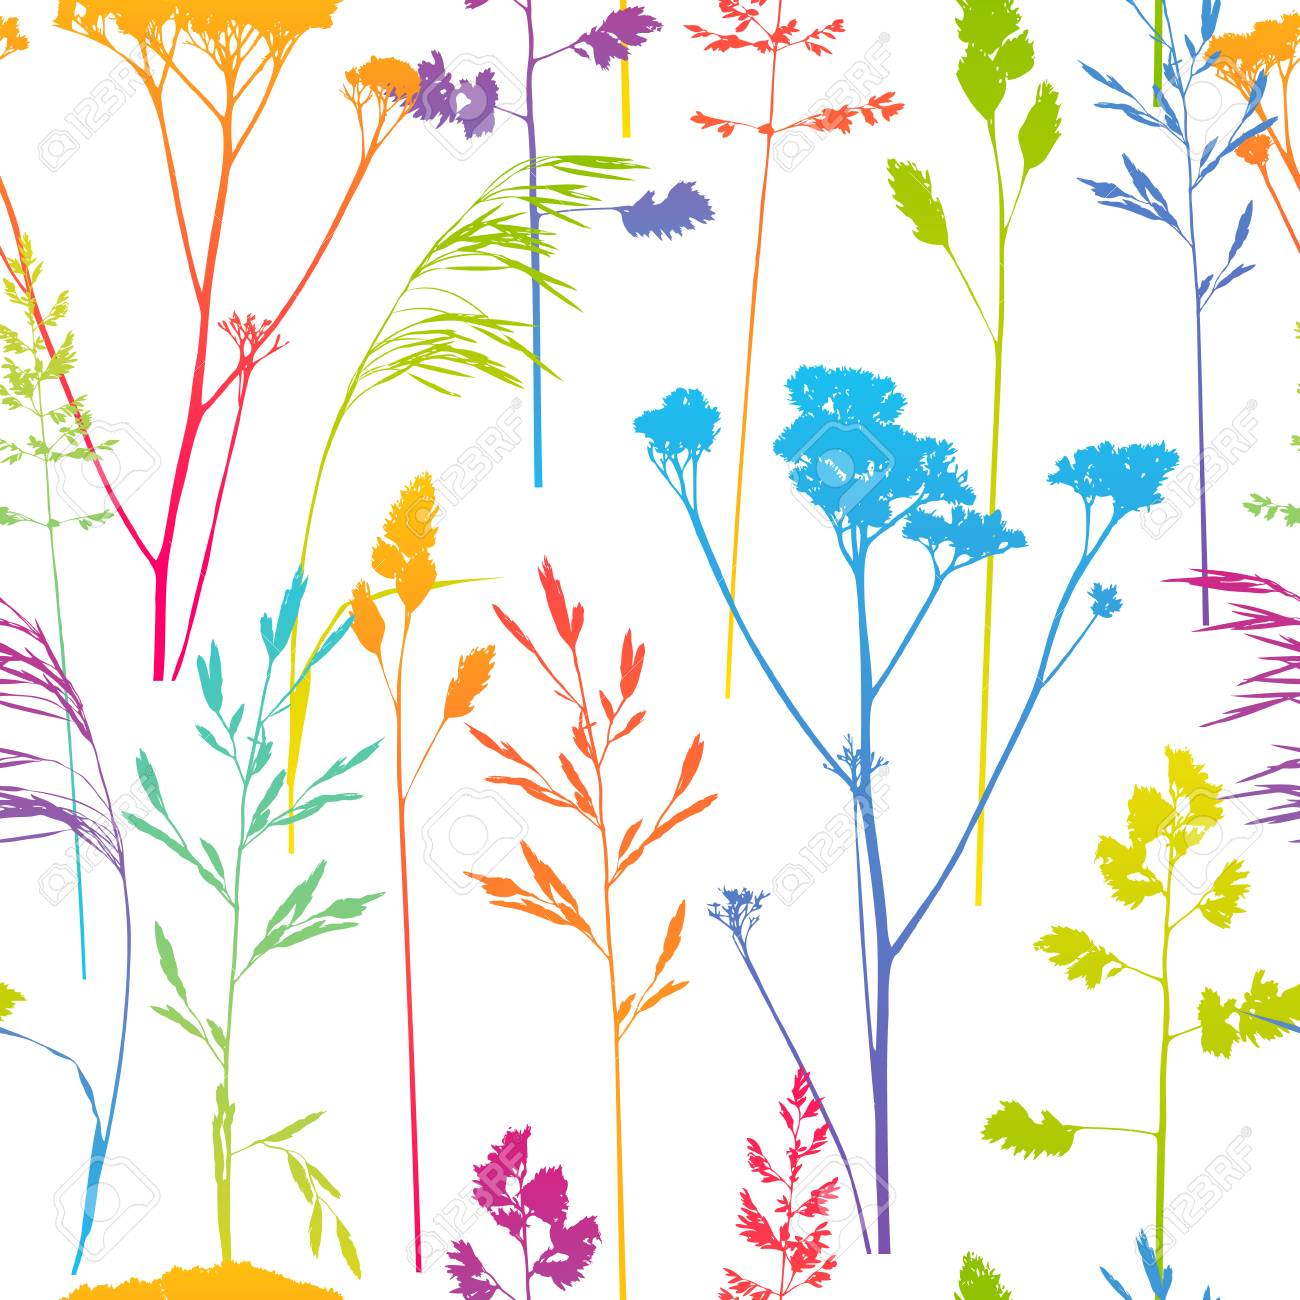 Seamless pattern with herbal silhouettes - 104617025